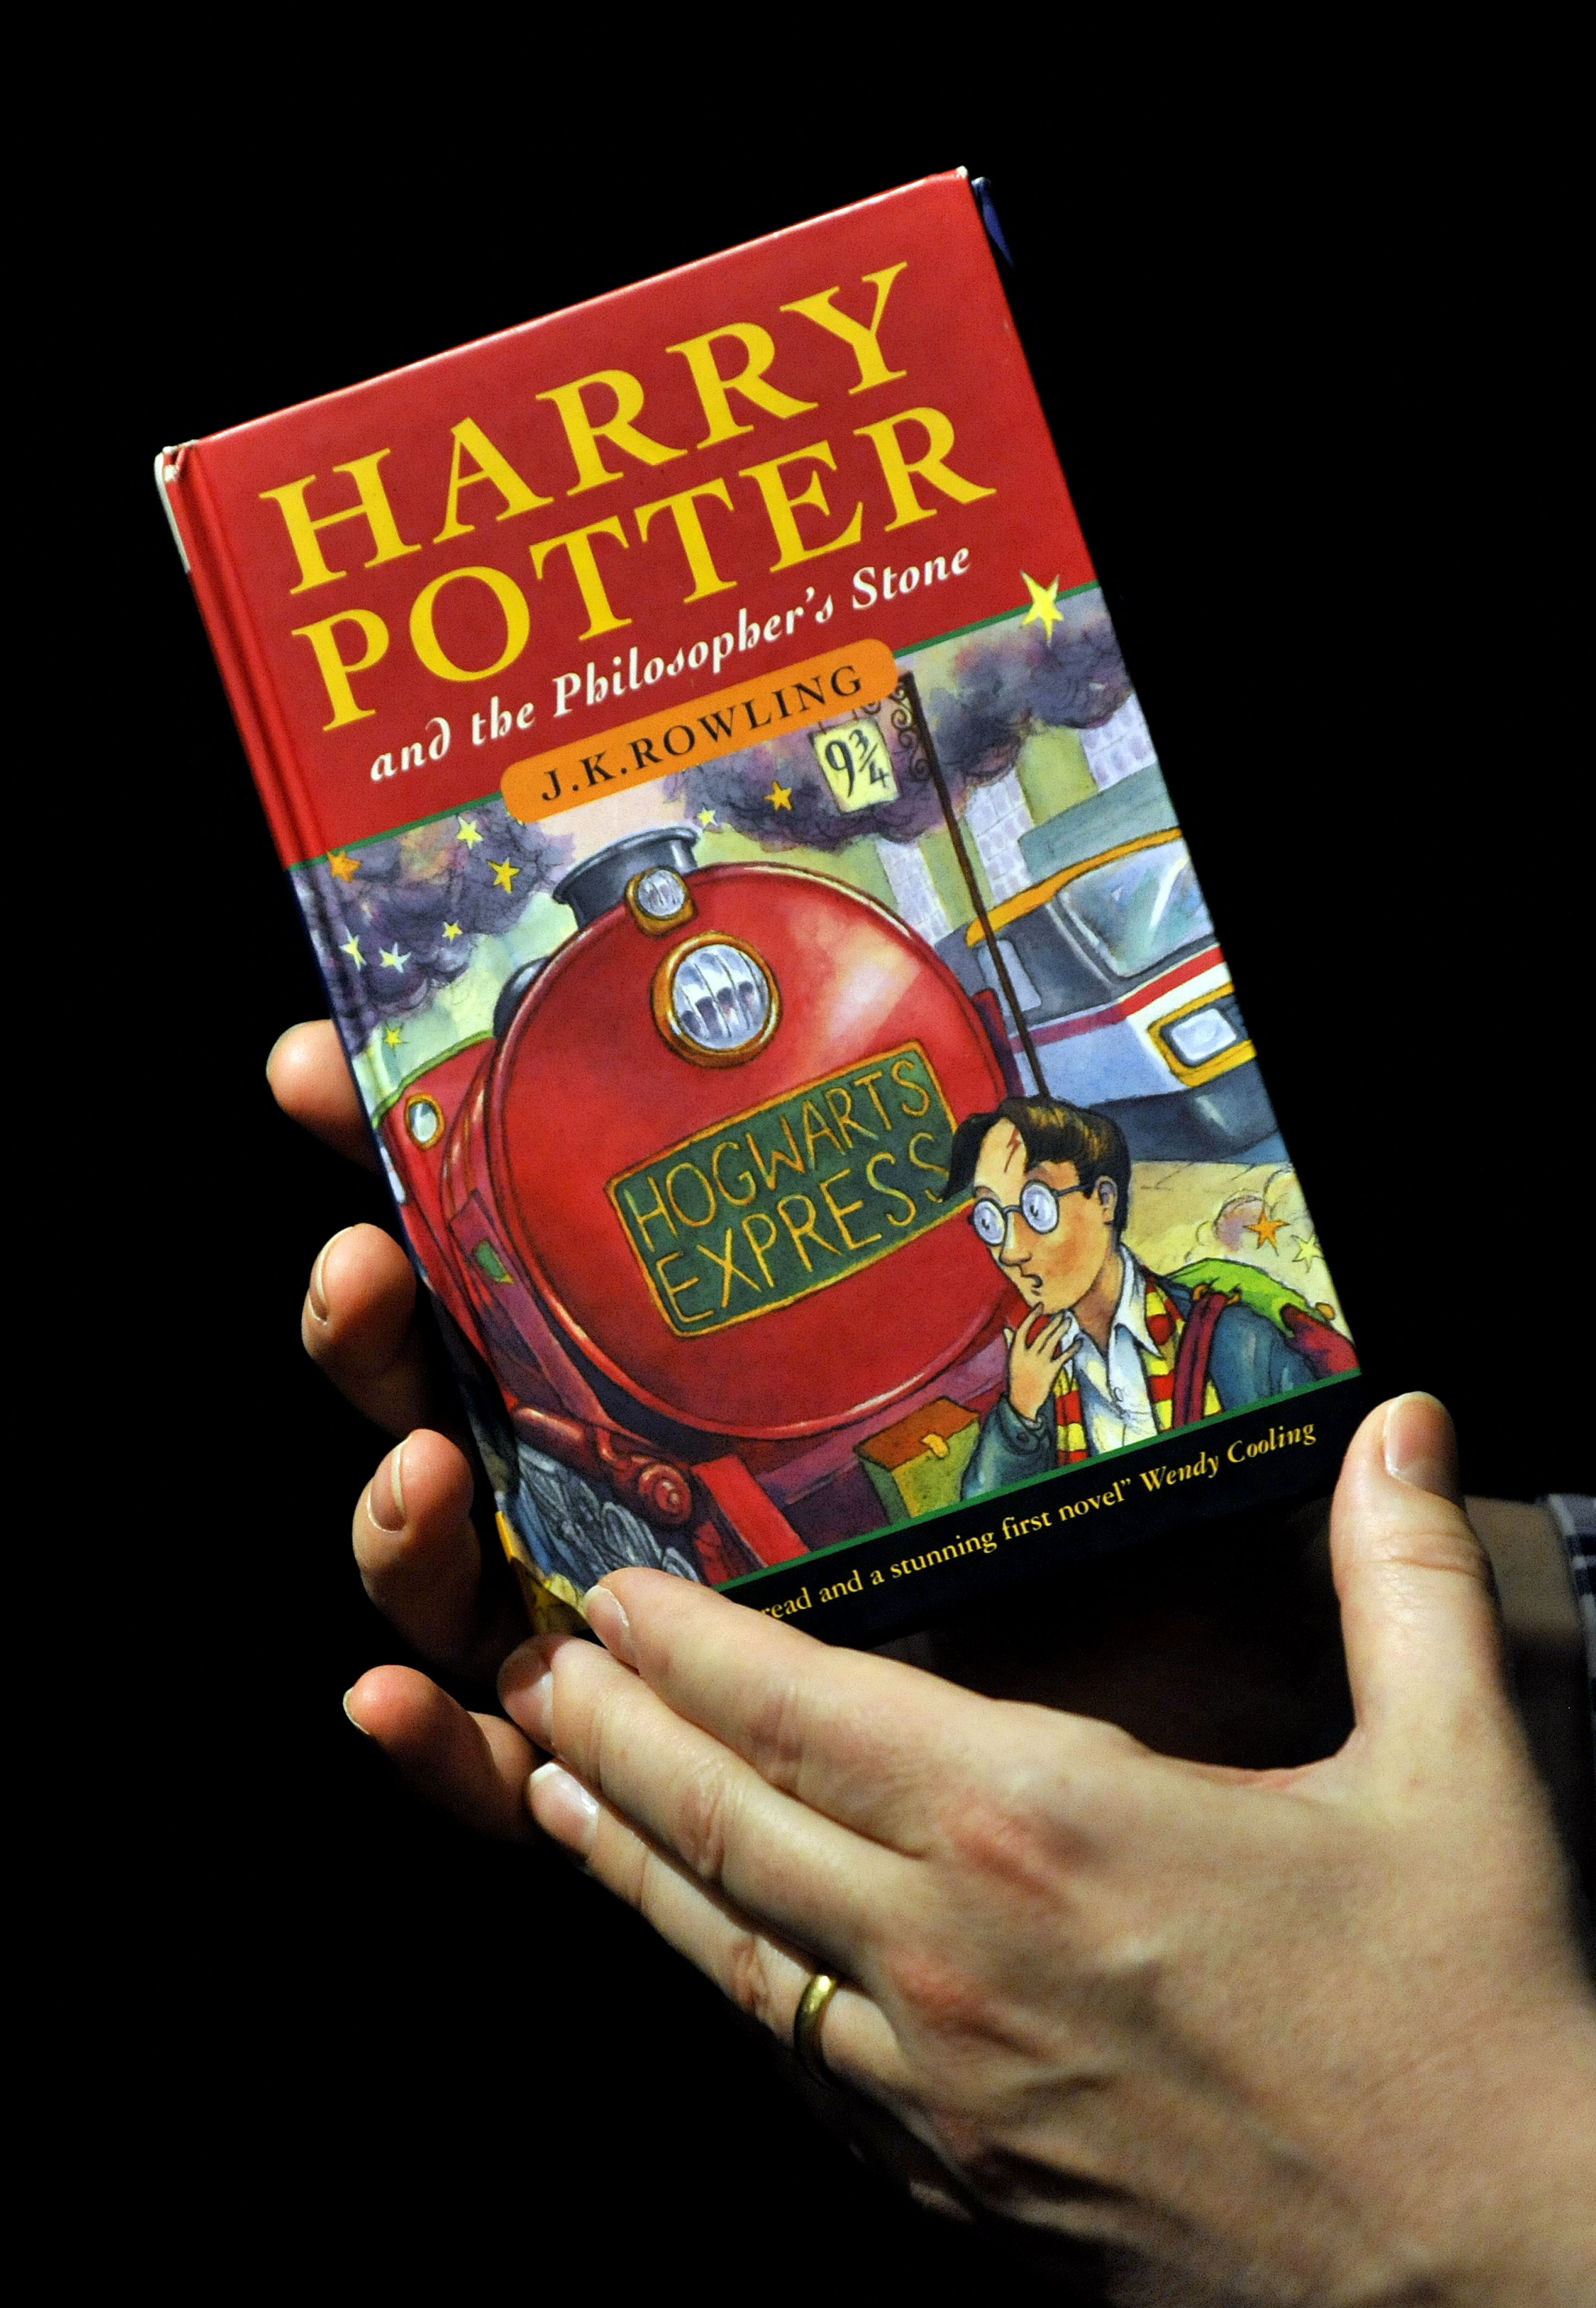 First editions can be worth anything from thousands of pounds to twenty quid. Credit: PA